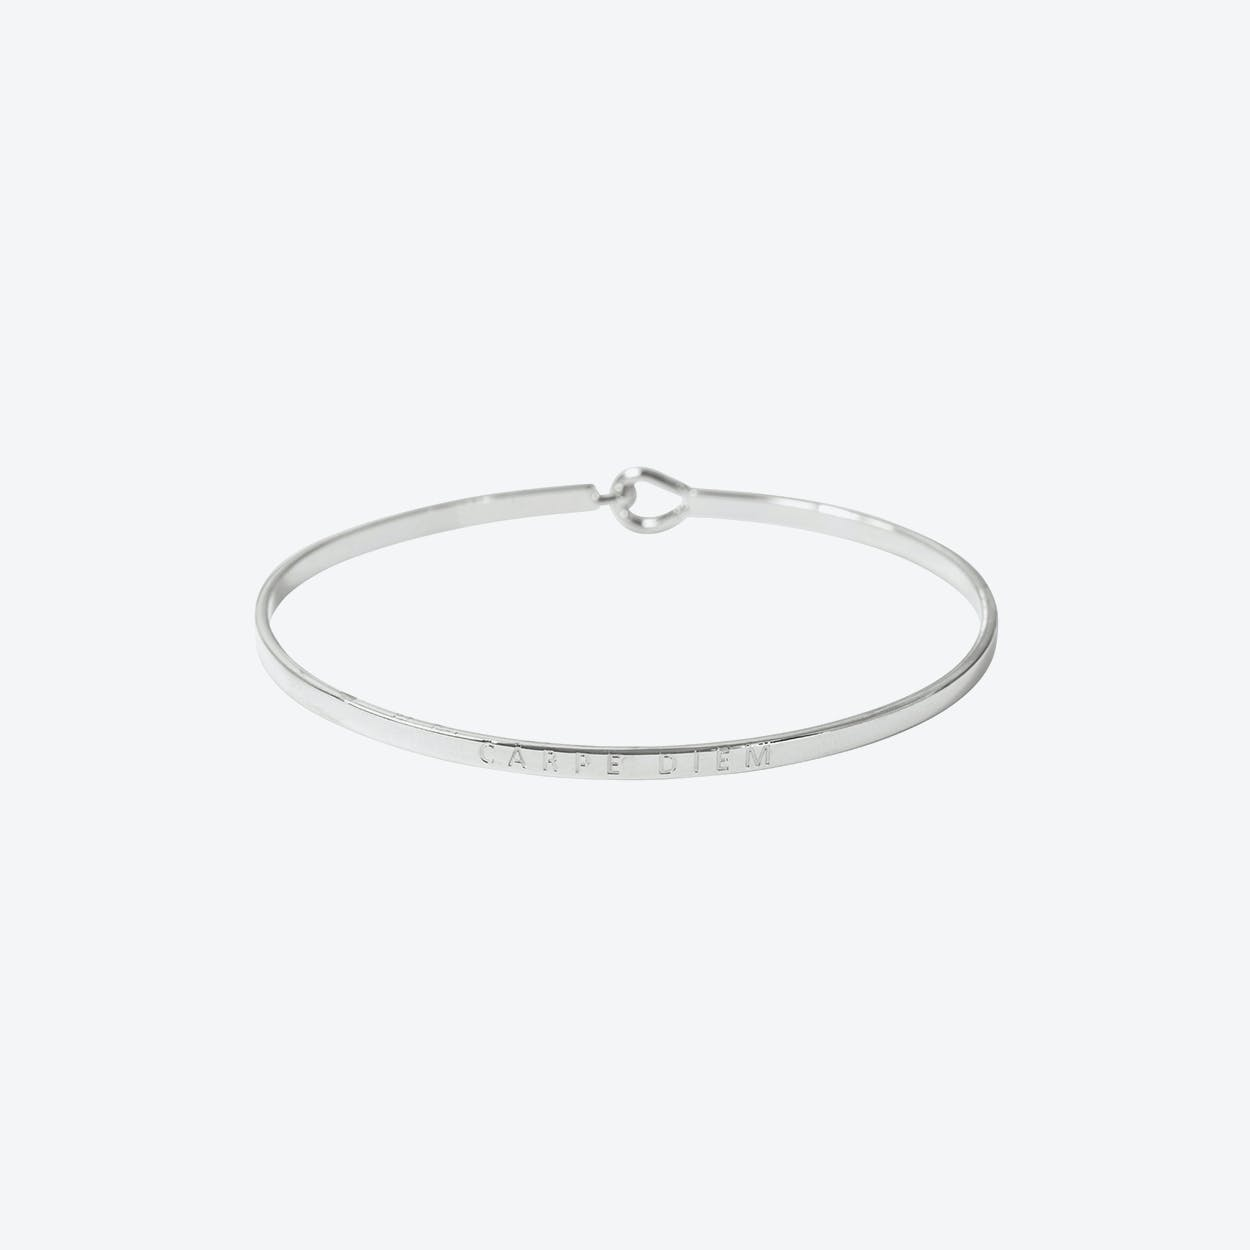 Siler Carpe Diem Bangle with Hook Fastening